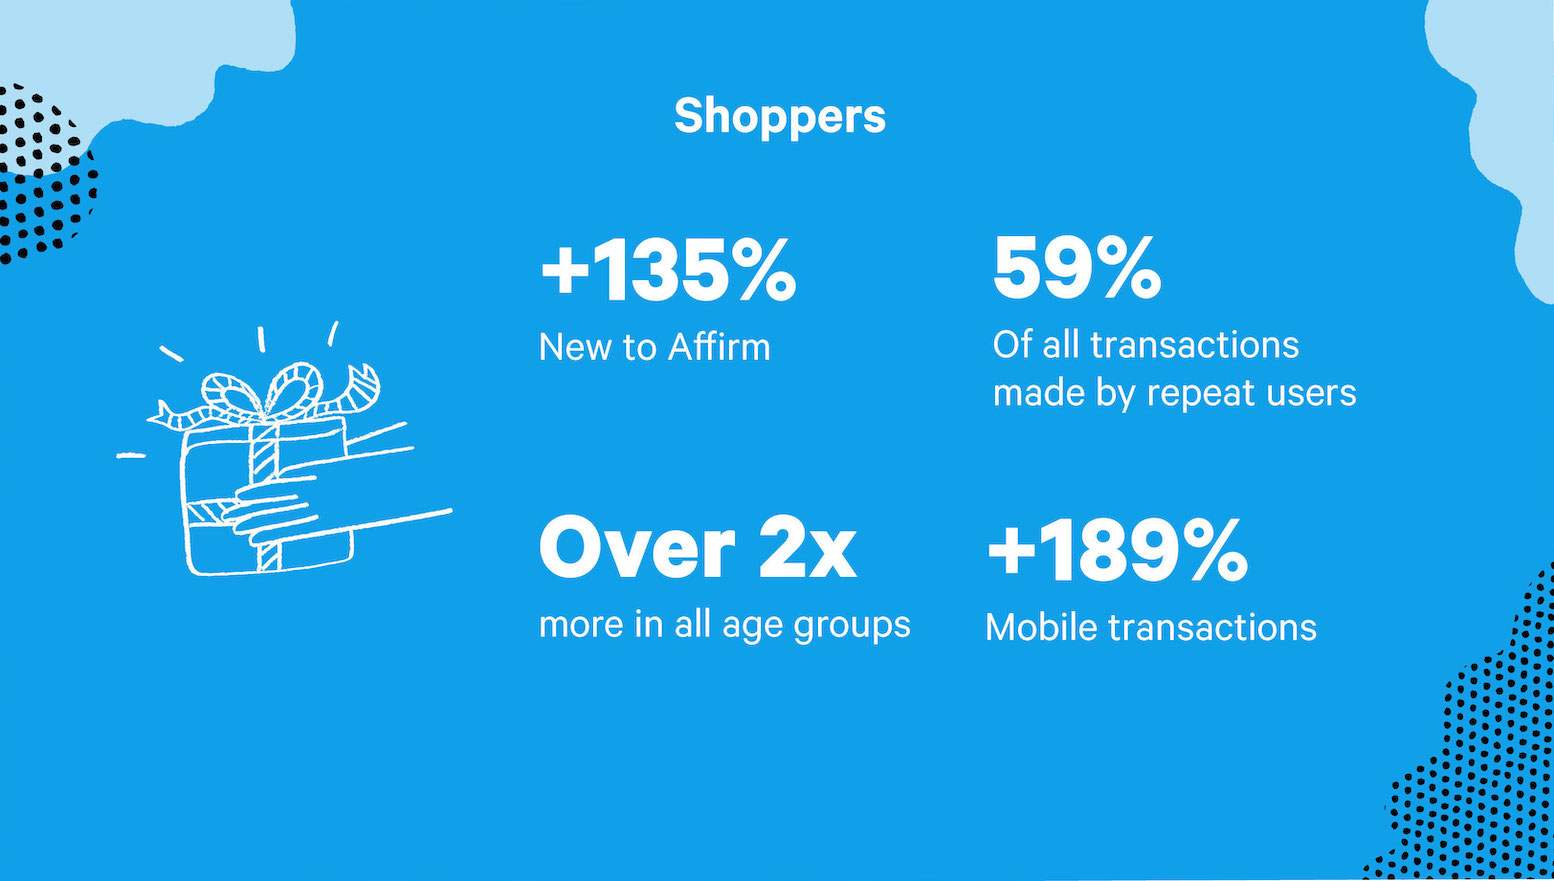 Infographic showing increase in holiday shopper activity with Affirm